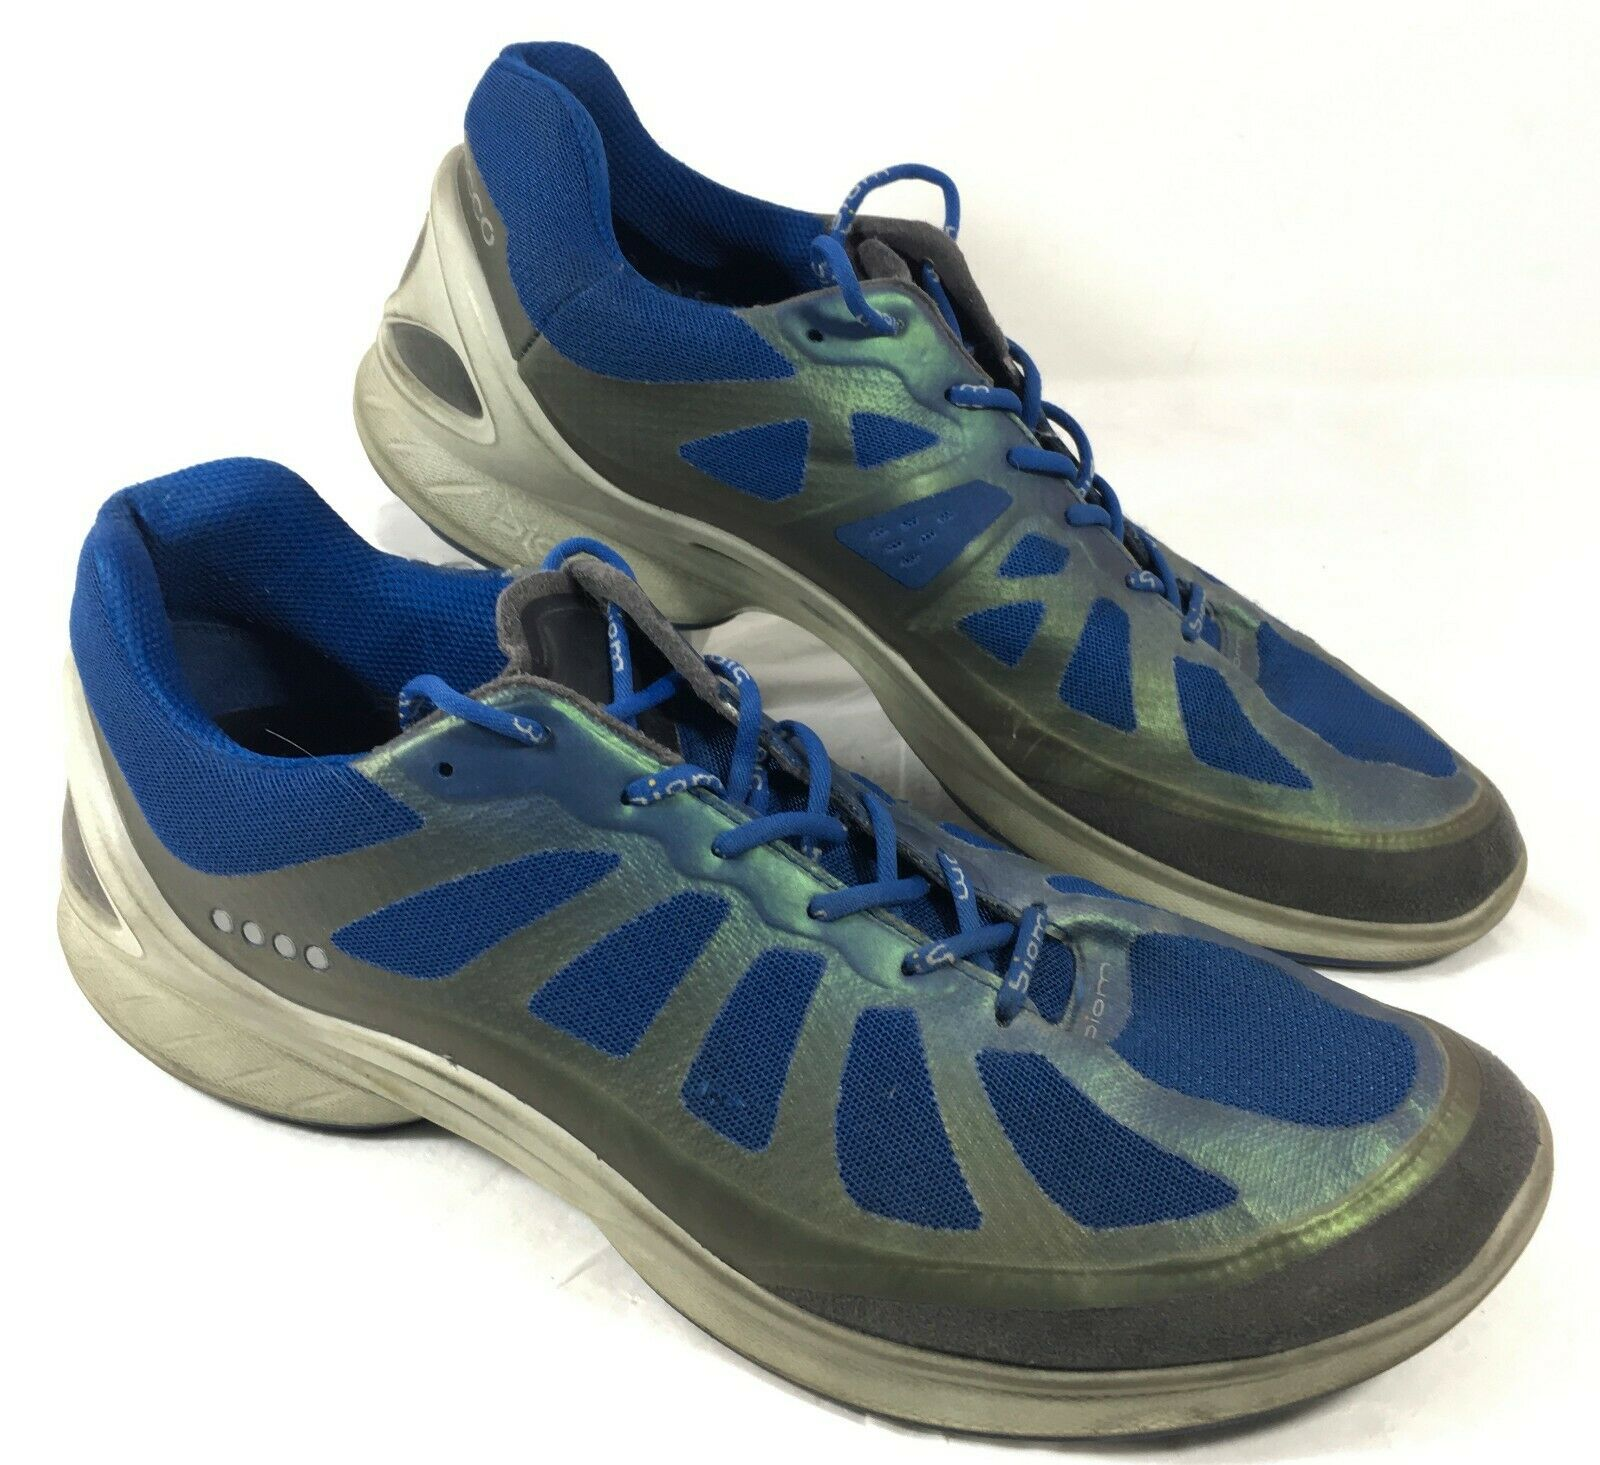 GUC Ecco Casual Sneakers Biom Fjuel Racer Running shoes Sz 44 10-10.5